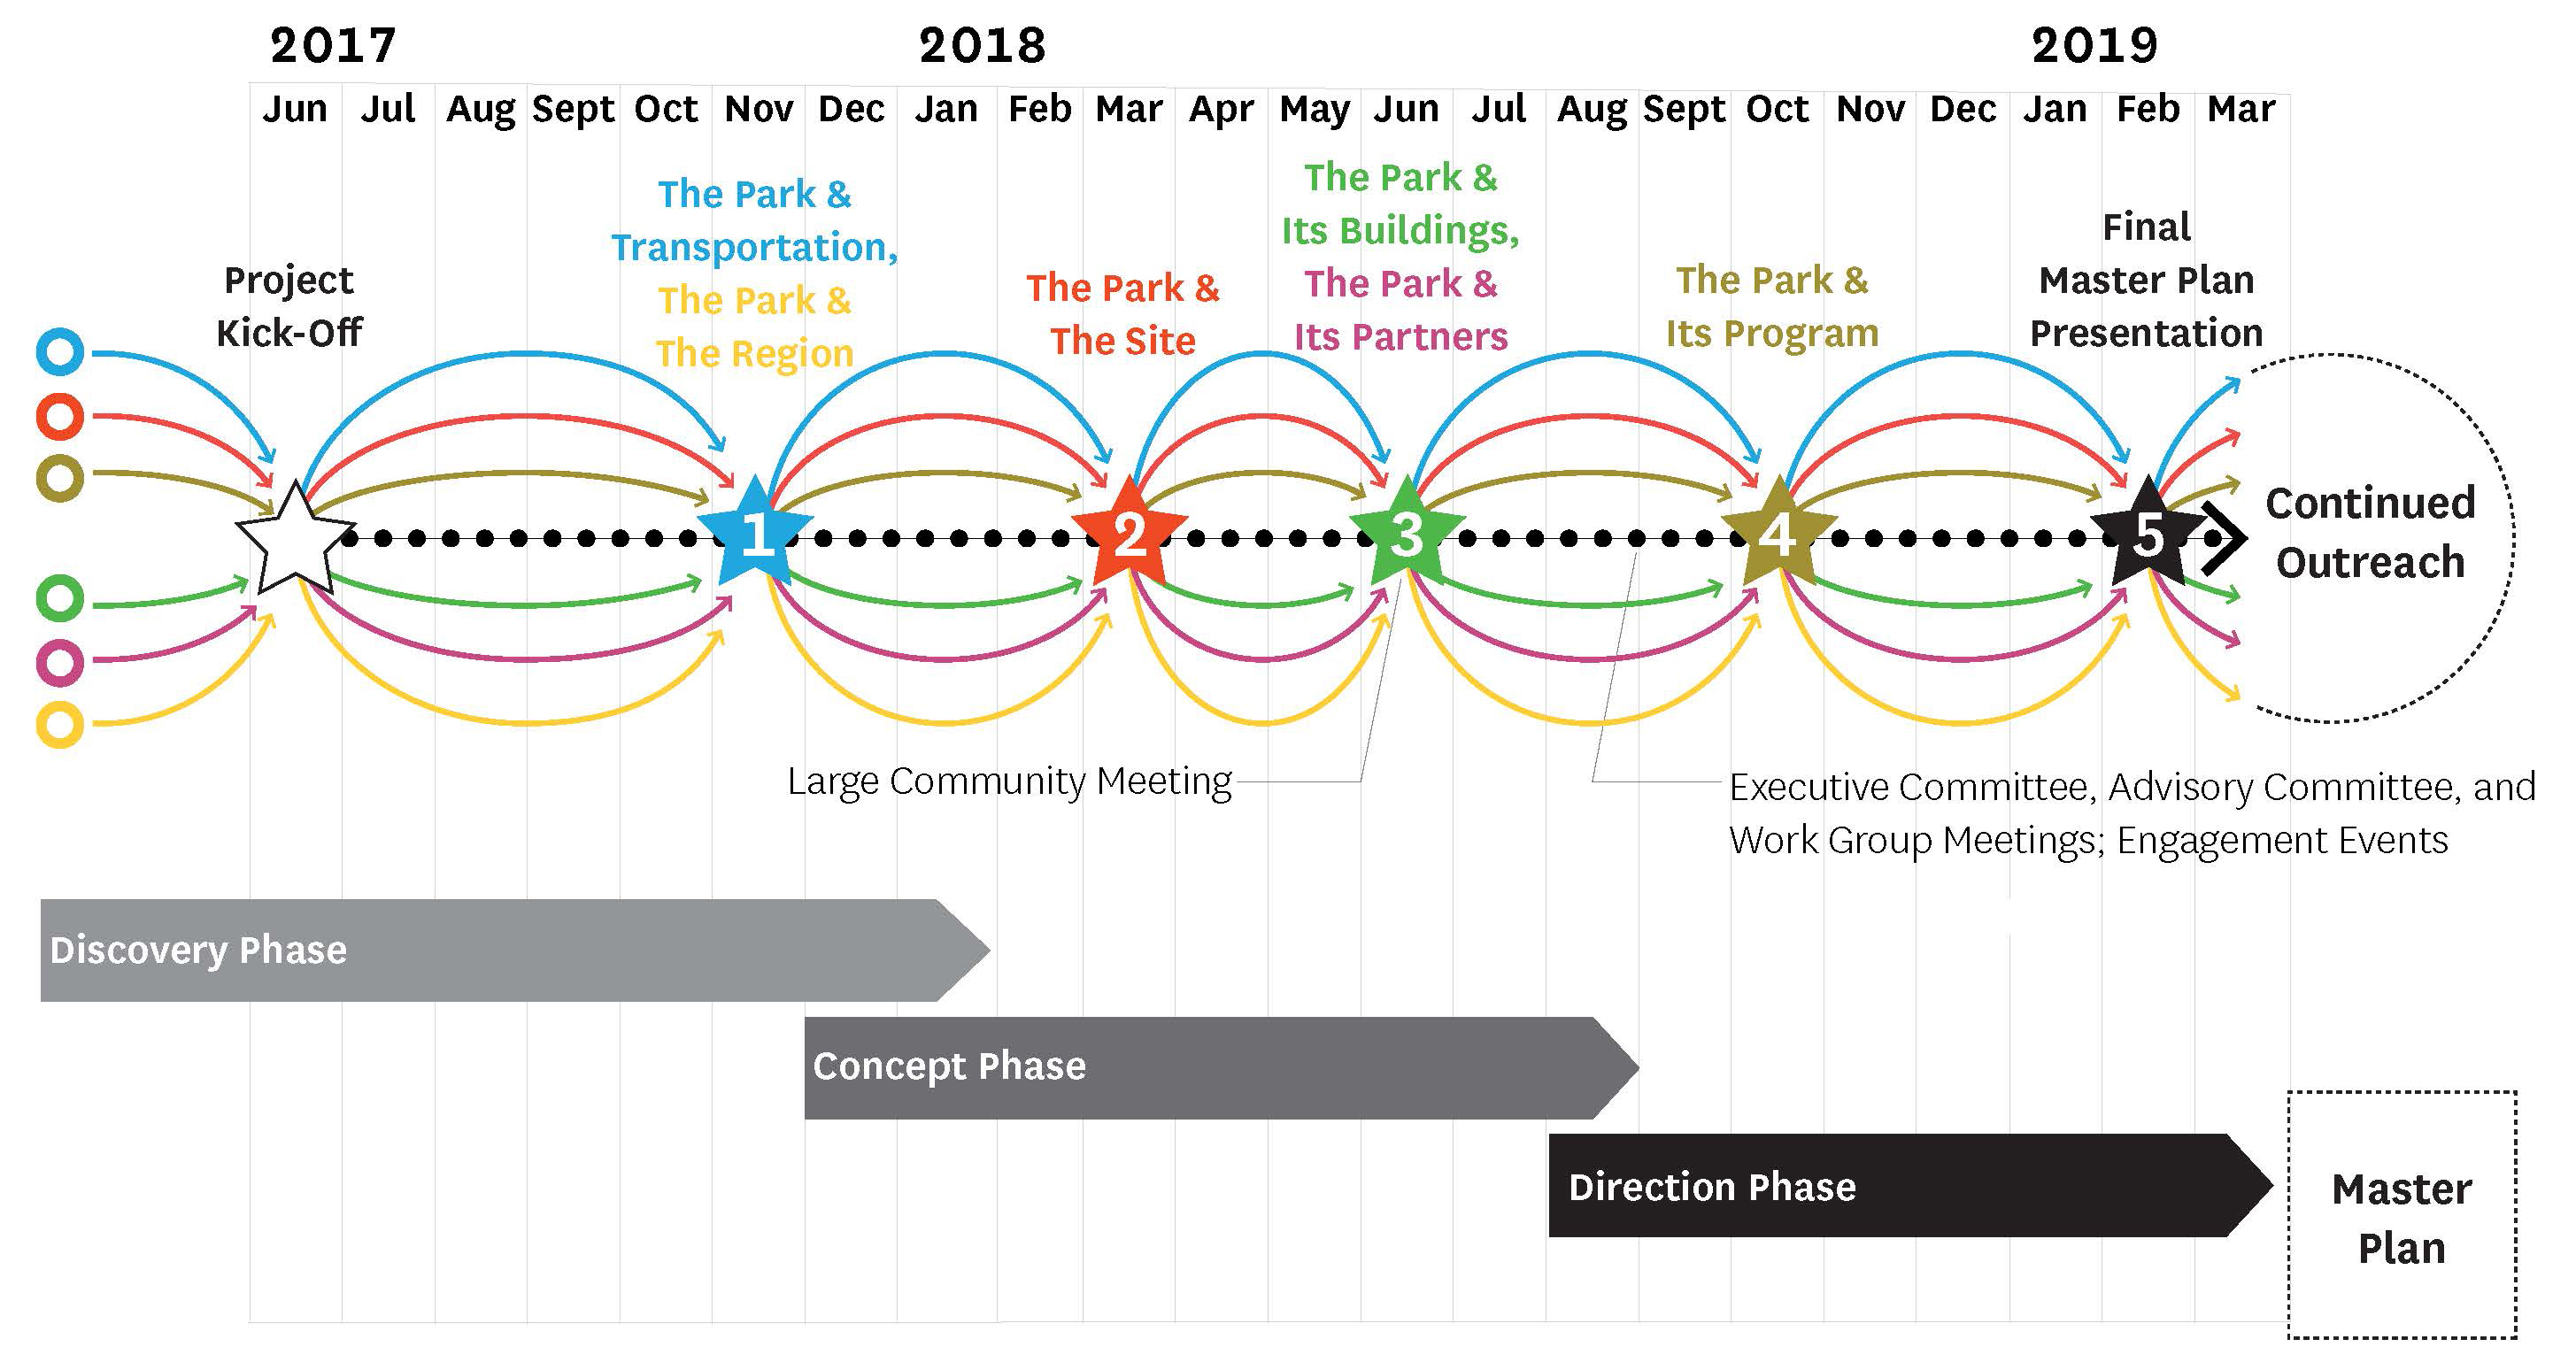 Master Plan graphic timeline